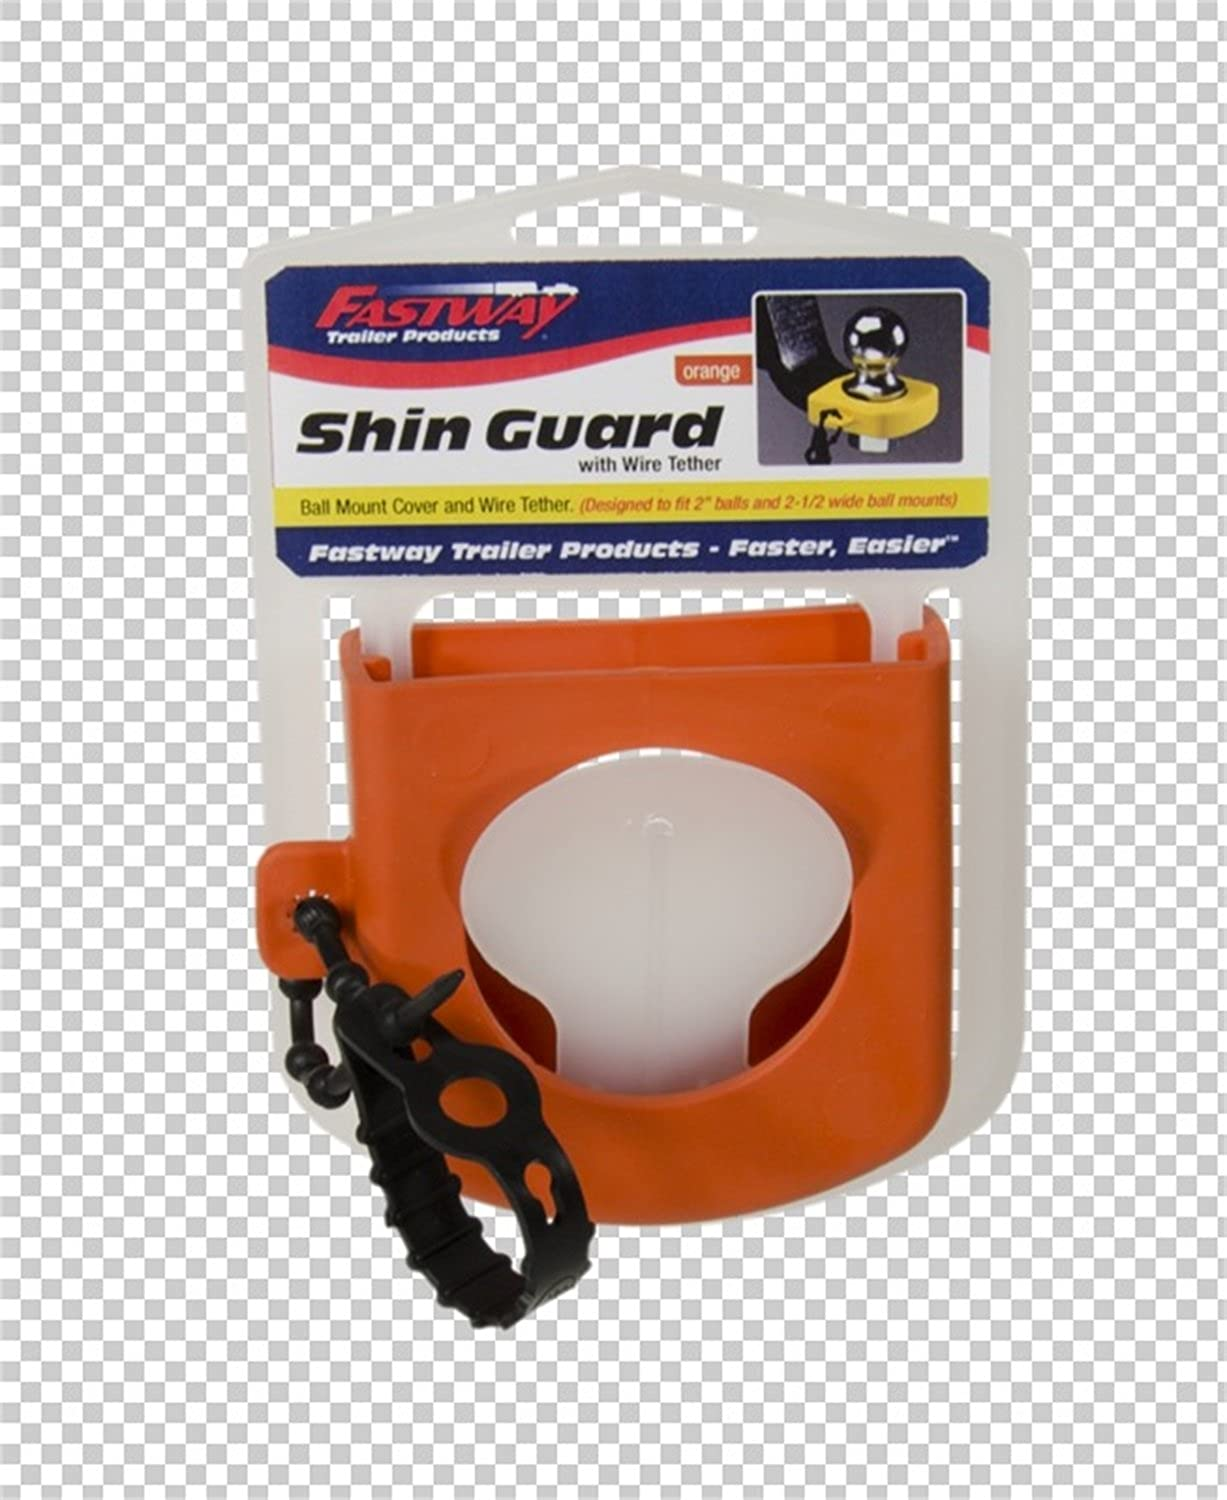 Hitch Shin Guard orange with wire Tether